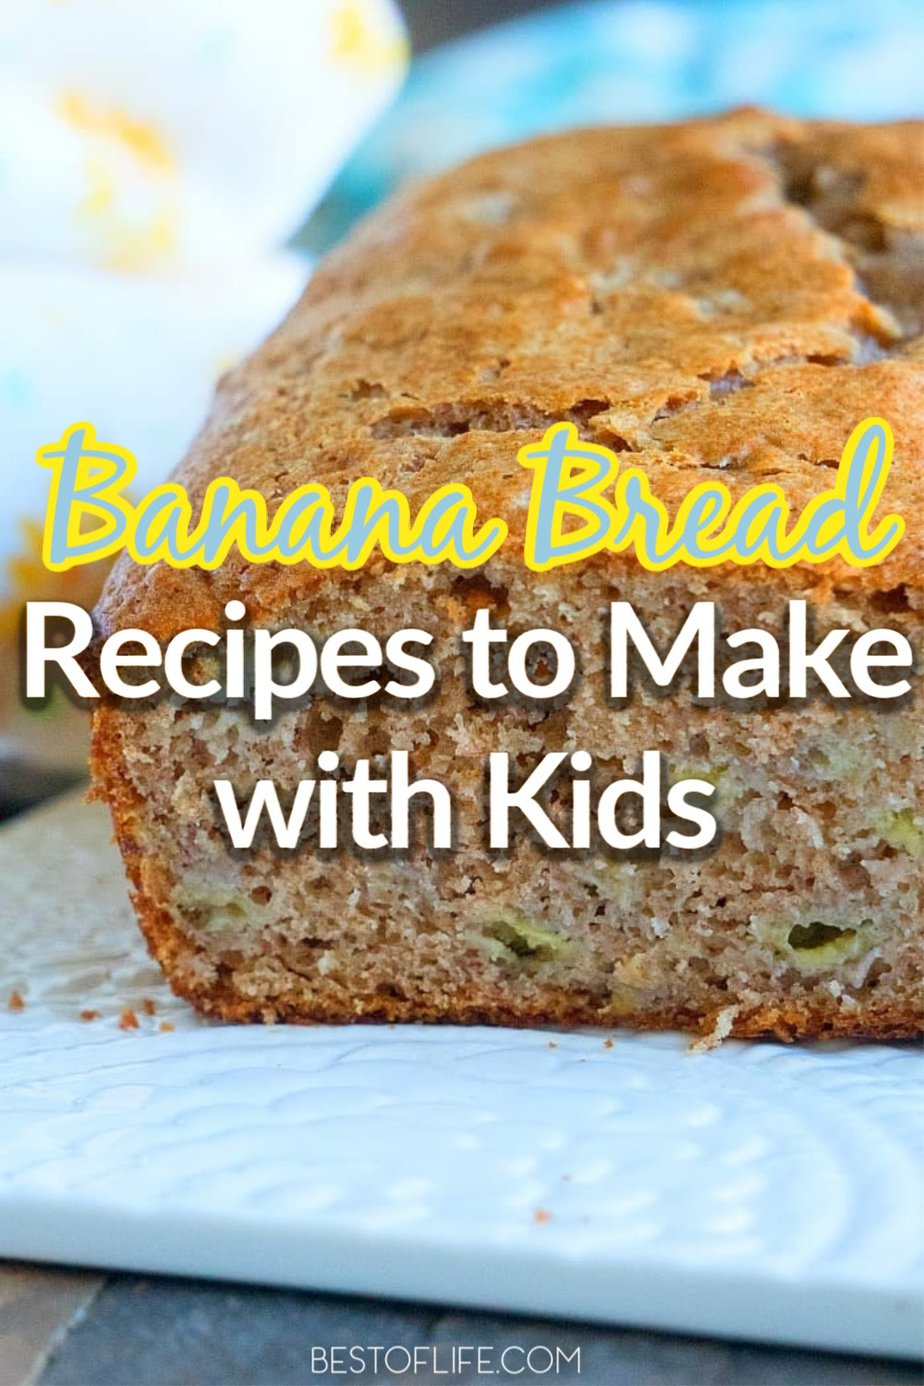 You can include the kids in making these banana bread recipes because they are family-friendly recipes that are simple and delicious. Banana Bread Brownies   Banana Bread Healthy   Banana Bread Recipe Chocolate Chip   Banana Bread Recipe Healthy   Recipes with Bananas #banana #recipe